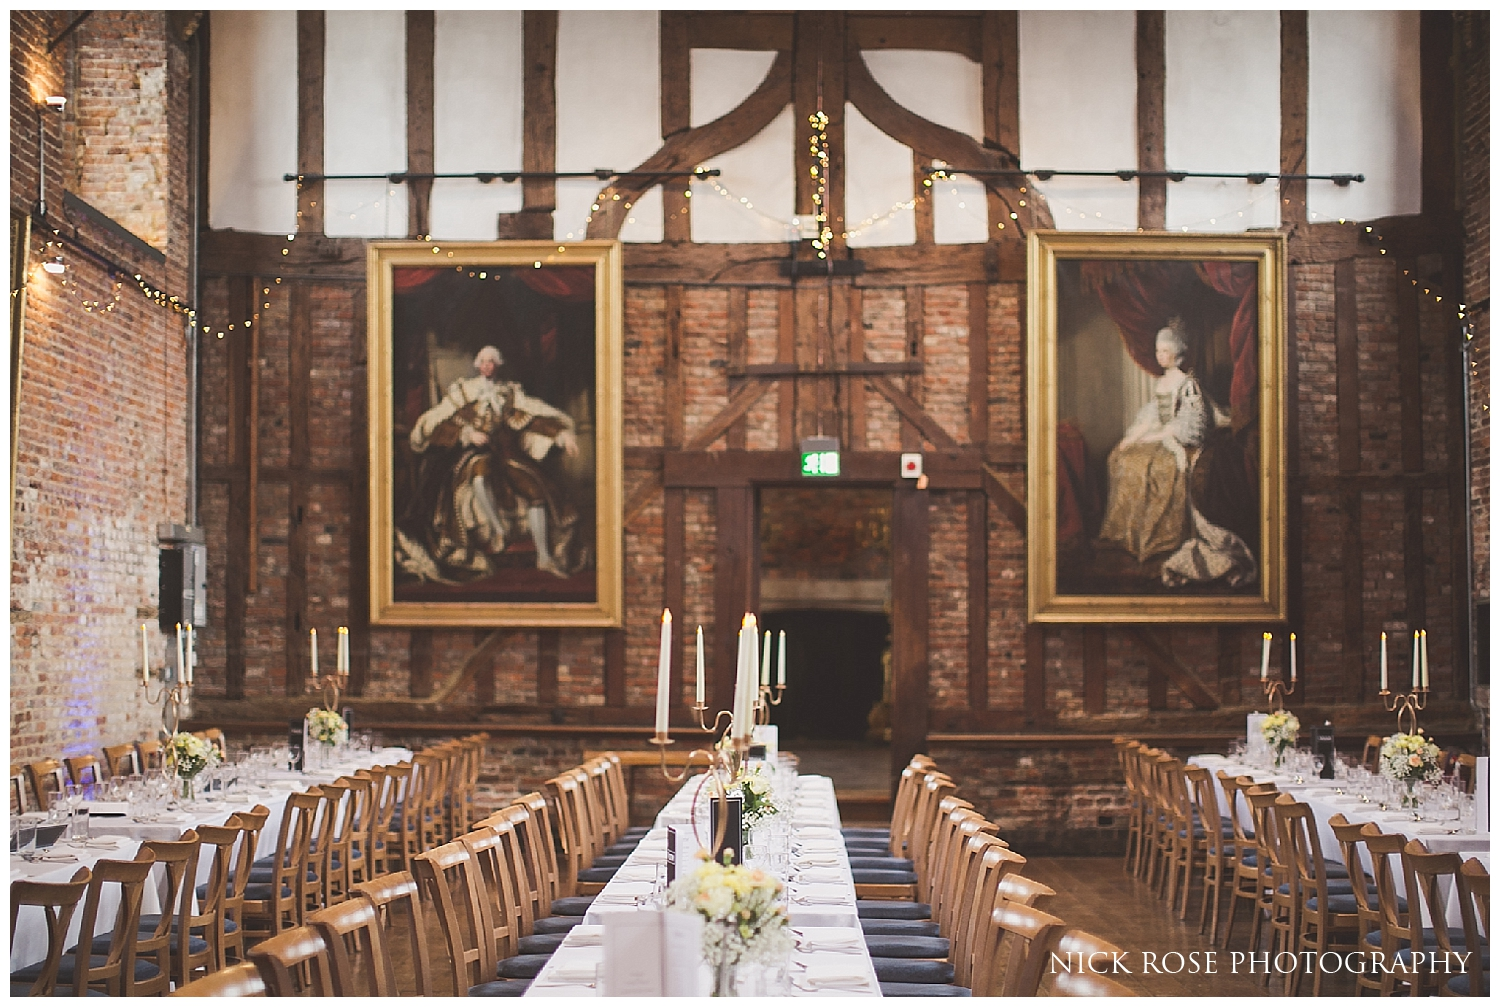 Hindu Wedding Reception at Hatfield House